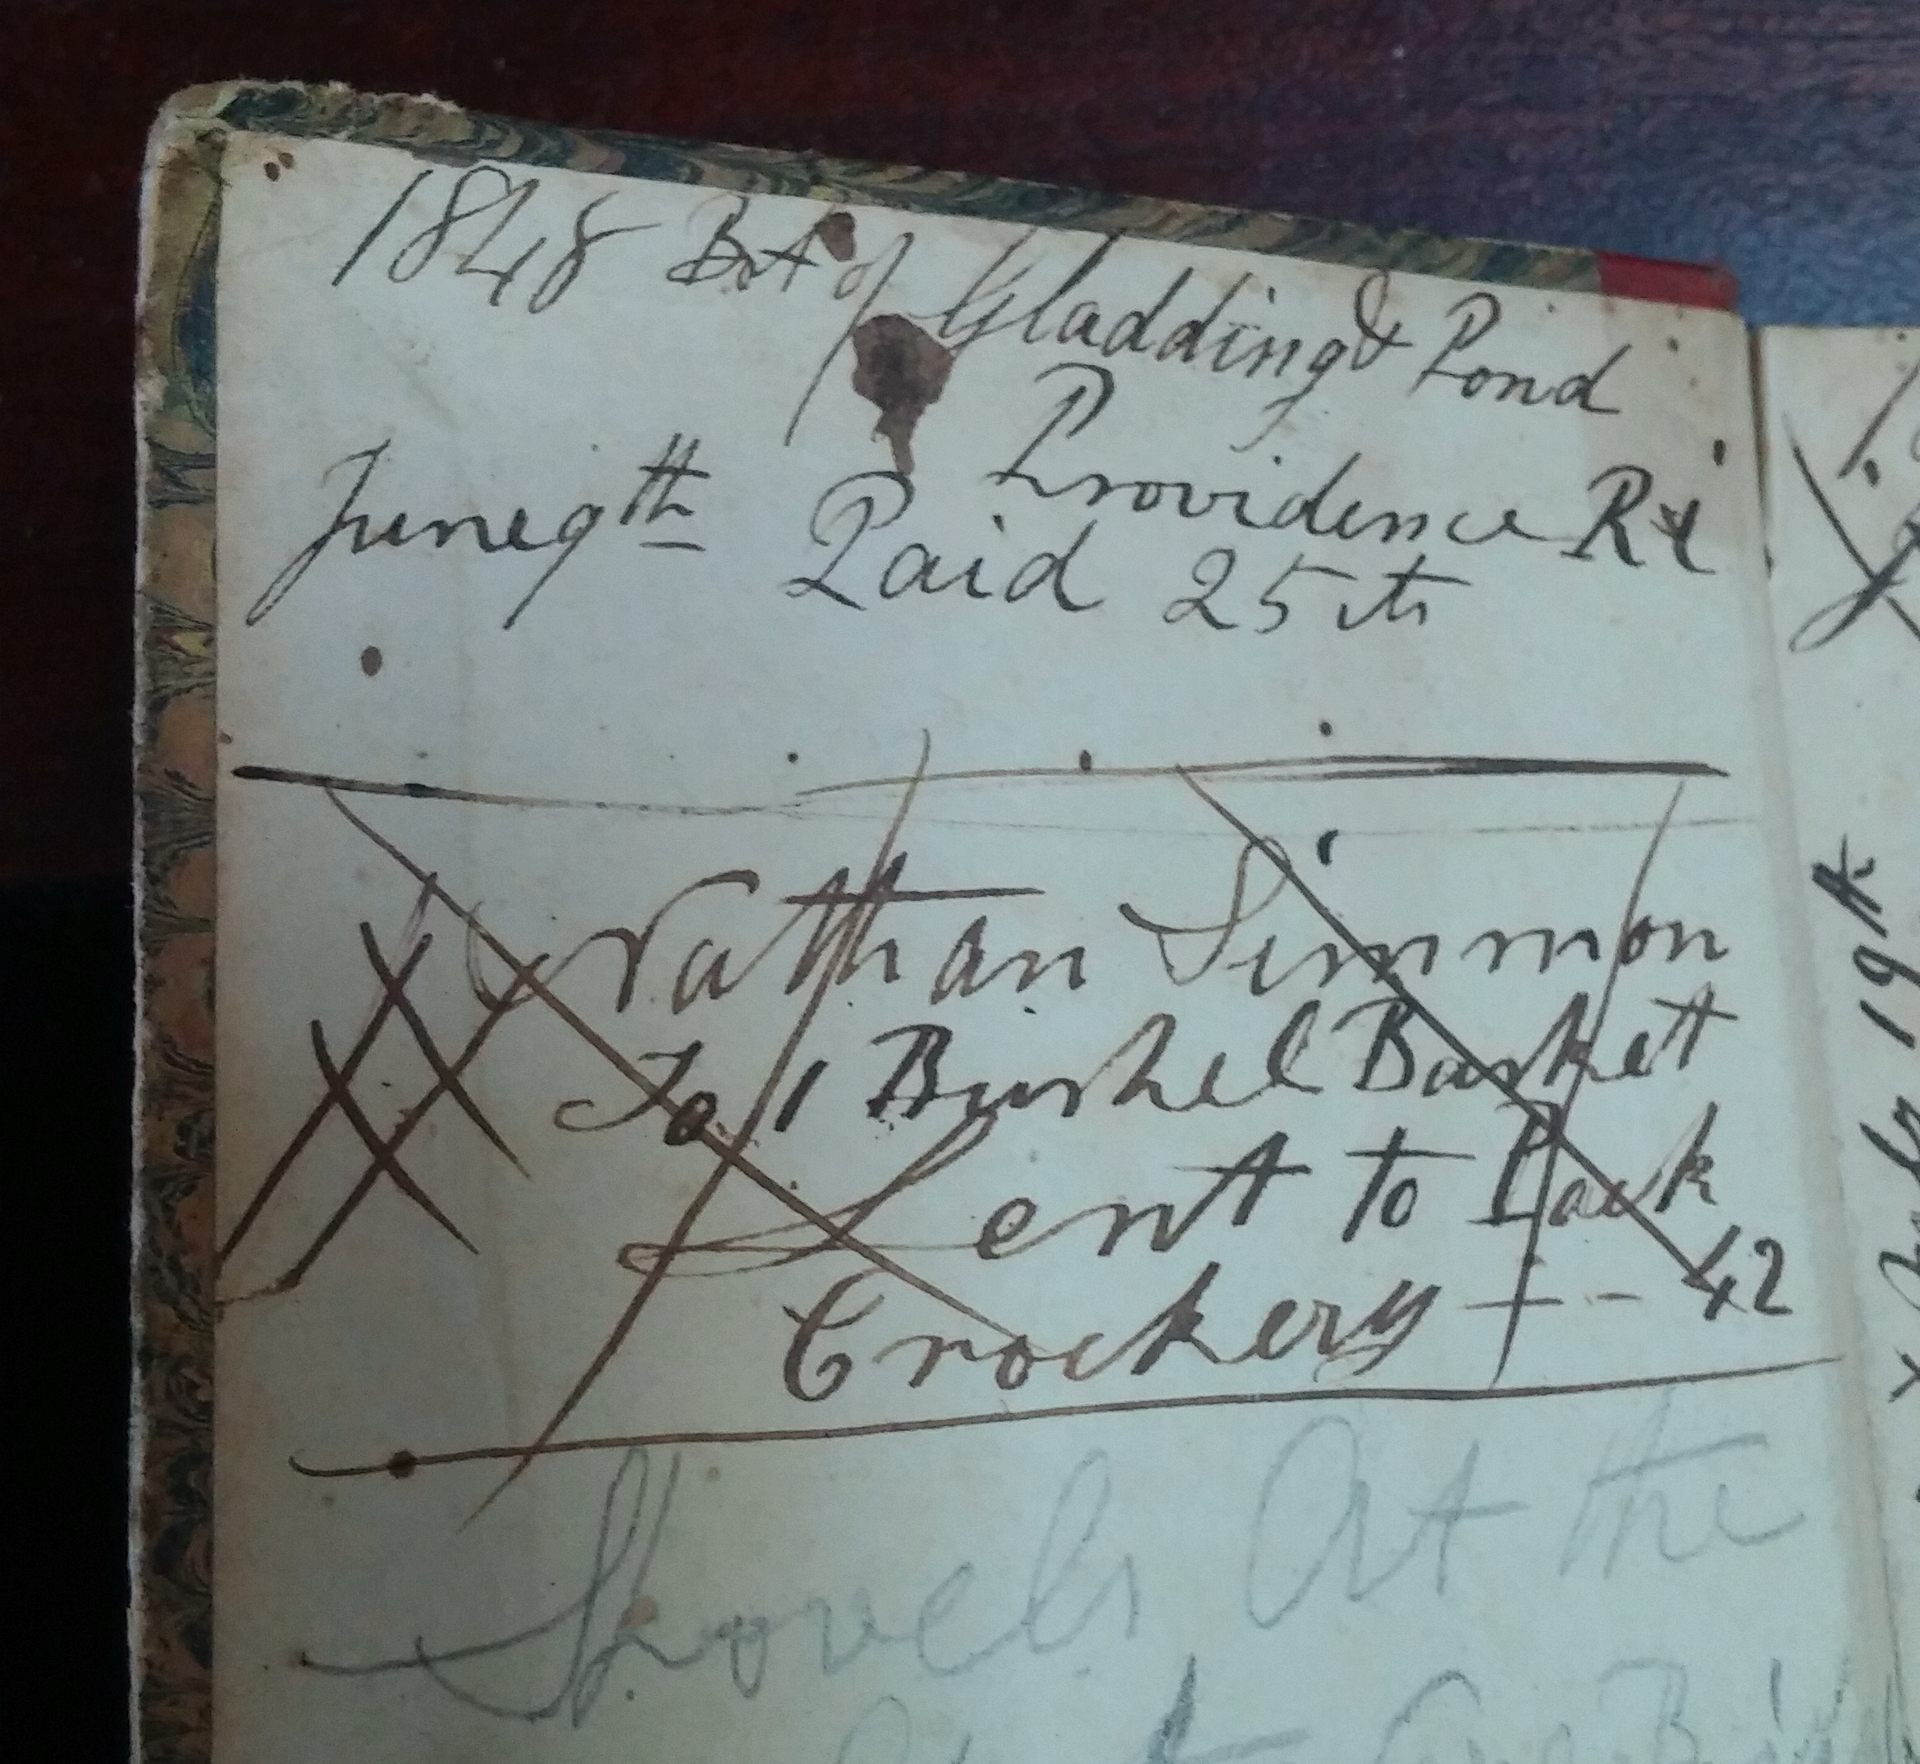 1848 Ledger of Accounts - Gladding and Pond, Providence RI.  I have a Nathan Simmons in my tree - but I have nothing to connect these two names.